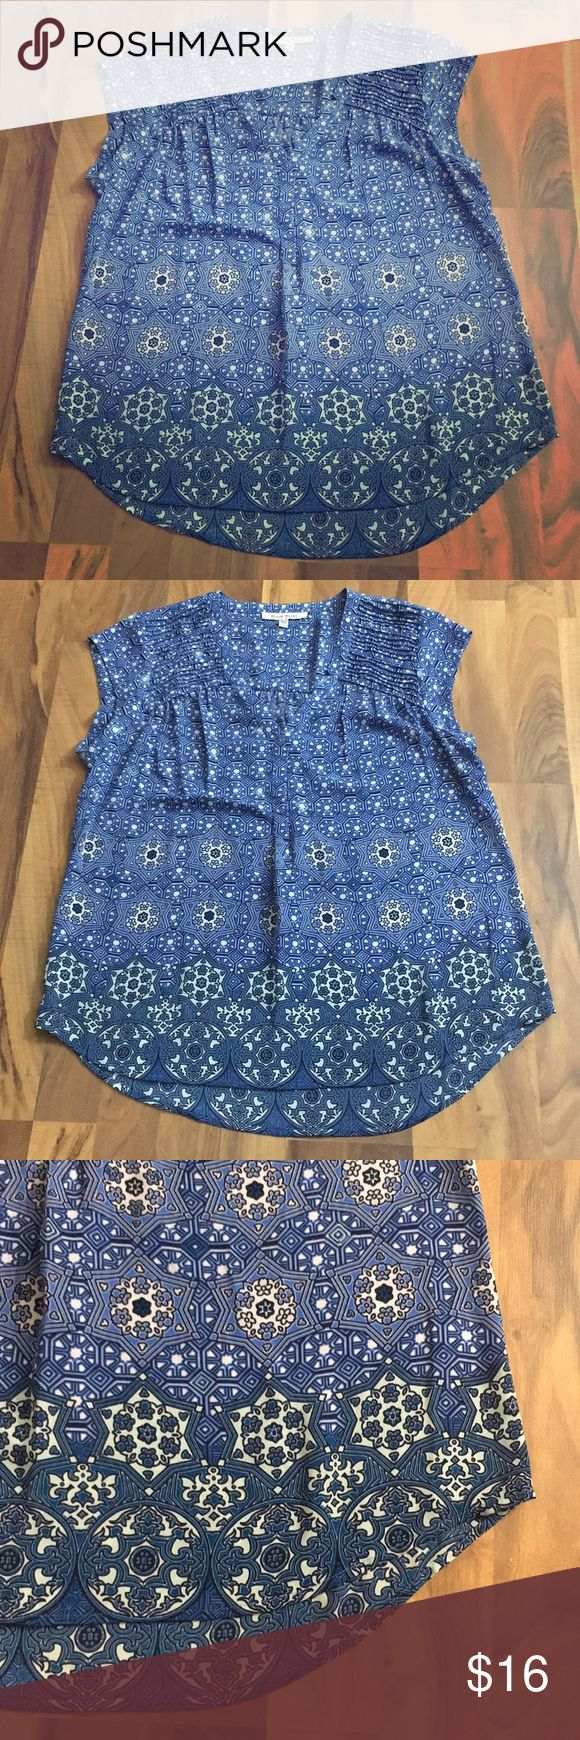 Black Rainn Size Large Blue Geo Print Boho Top This top is up for sale! Great condition! Cute!  ❤ Mix Of blues and white, slightly sheer ❤ Pleated shoulders, Vneck ❤ lightweight, flowey ❤ Size Measured in Pictures 🔍📏   ✅ Bundle up 3 items and save 💲✅  ❤️I love reasonable offers. ❤️ 🎉 Pair with our jewelry, acc. or purses 🎉 🆕🆕 New items every week! 🆕🆕 black rainn Tops Blouses